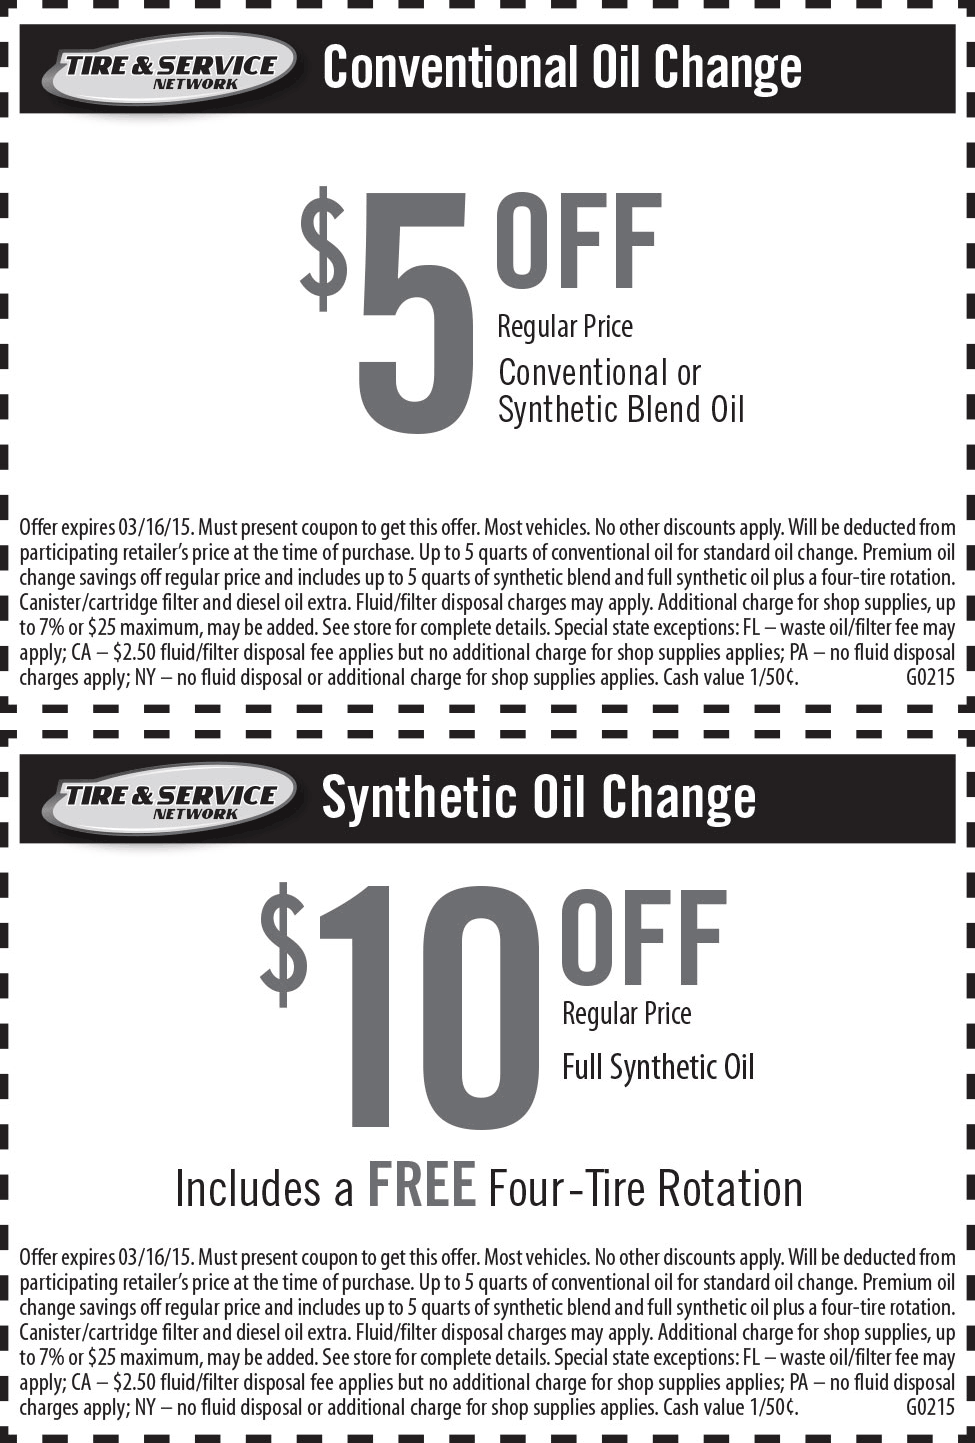 Goodyear Coupon May 2017 $5-10 off an oil change at Goodyear